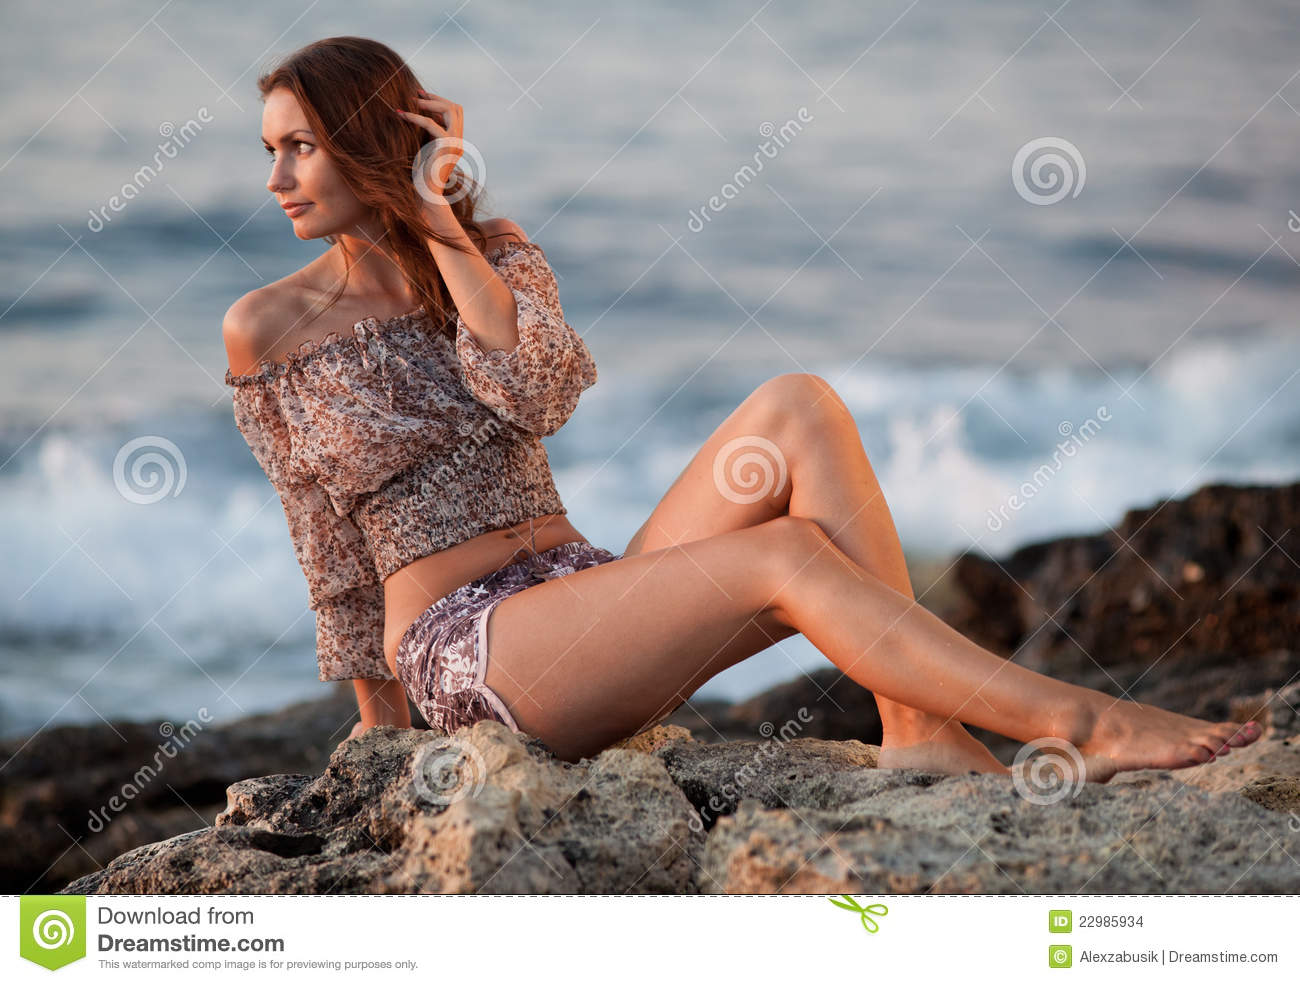 Girl sitting on rock mile without